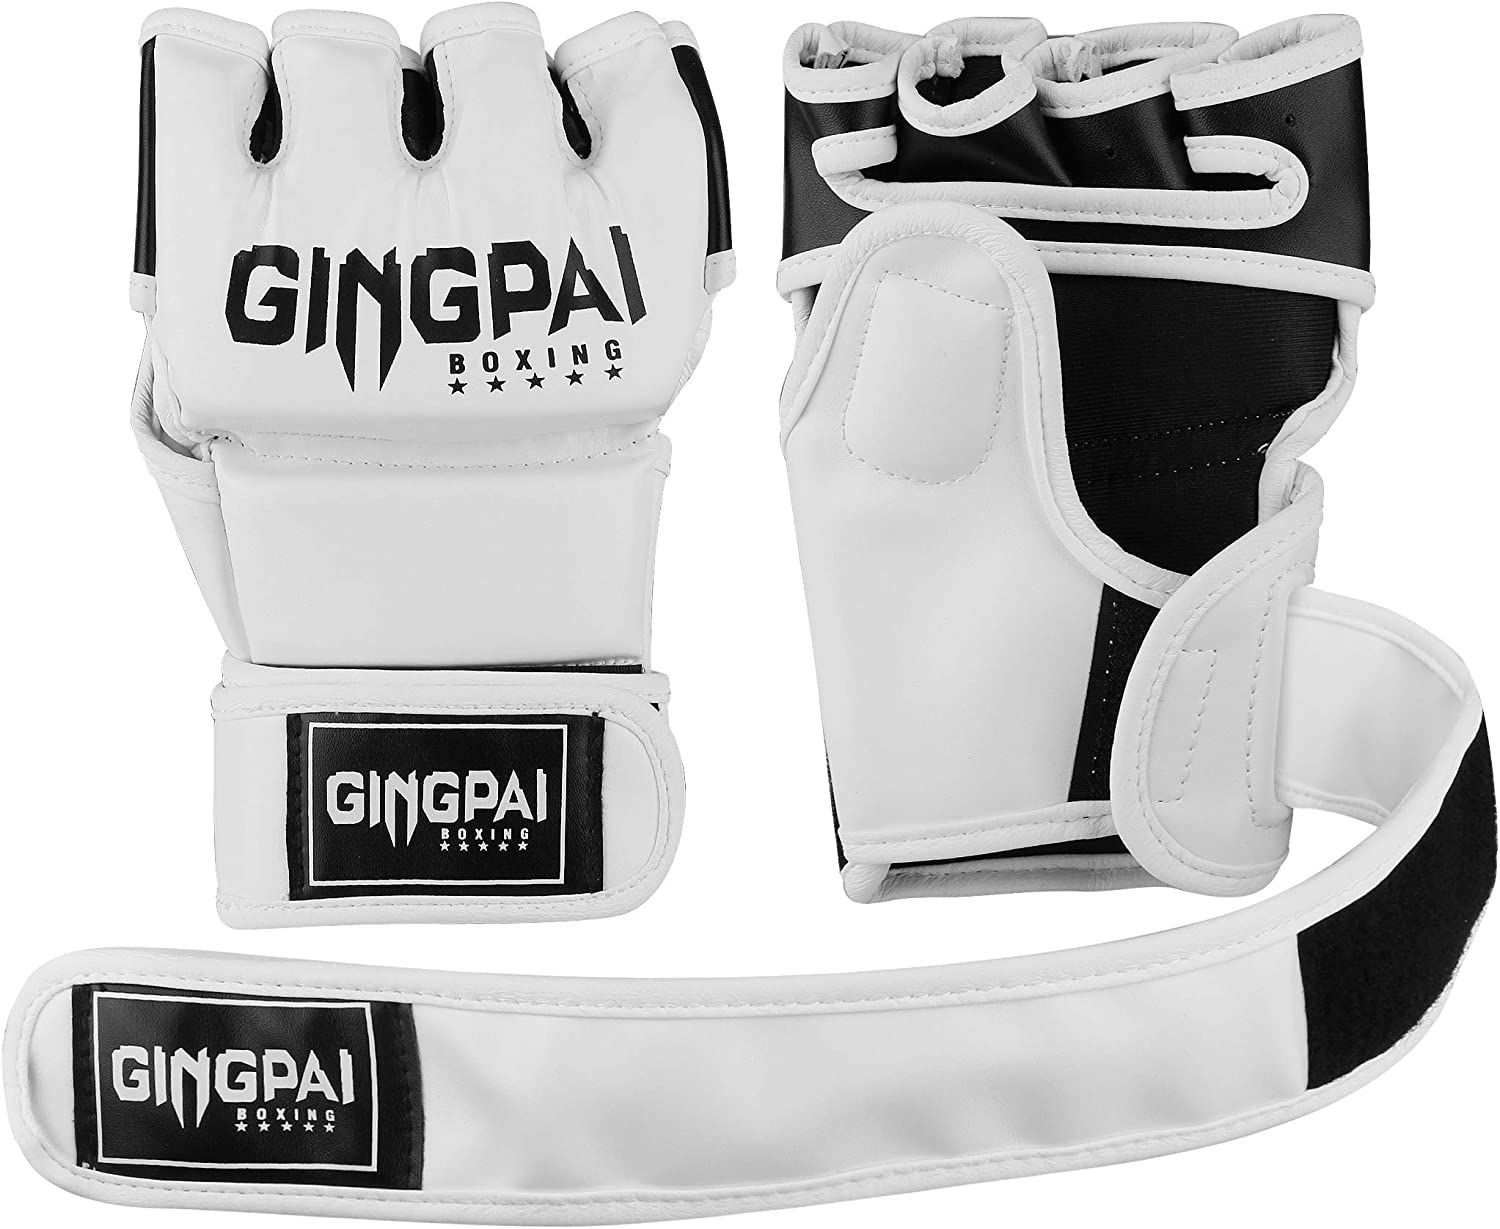 GINGPAI BOXING MMA UFC Gloves for Men Women Fingerless Punching Heavy Bag with More Paddding Gloves for Kickboxing Muay Thai Sparring